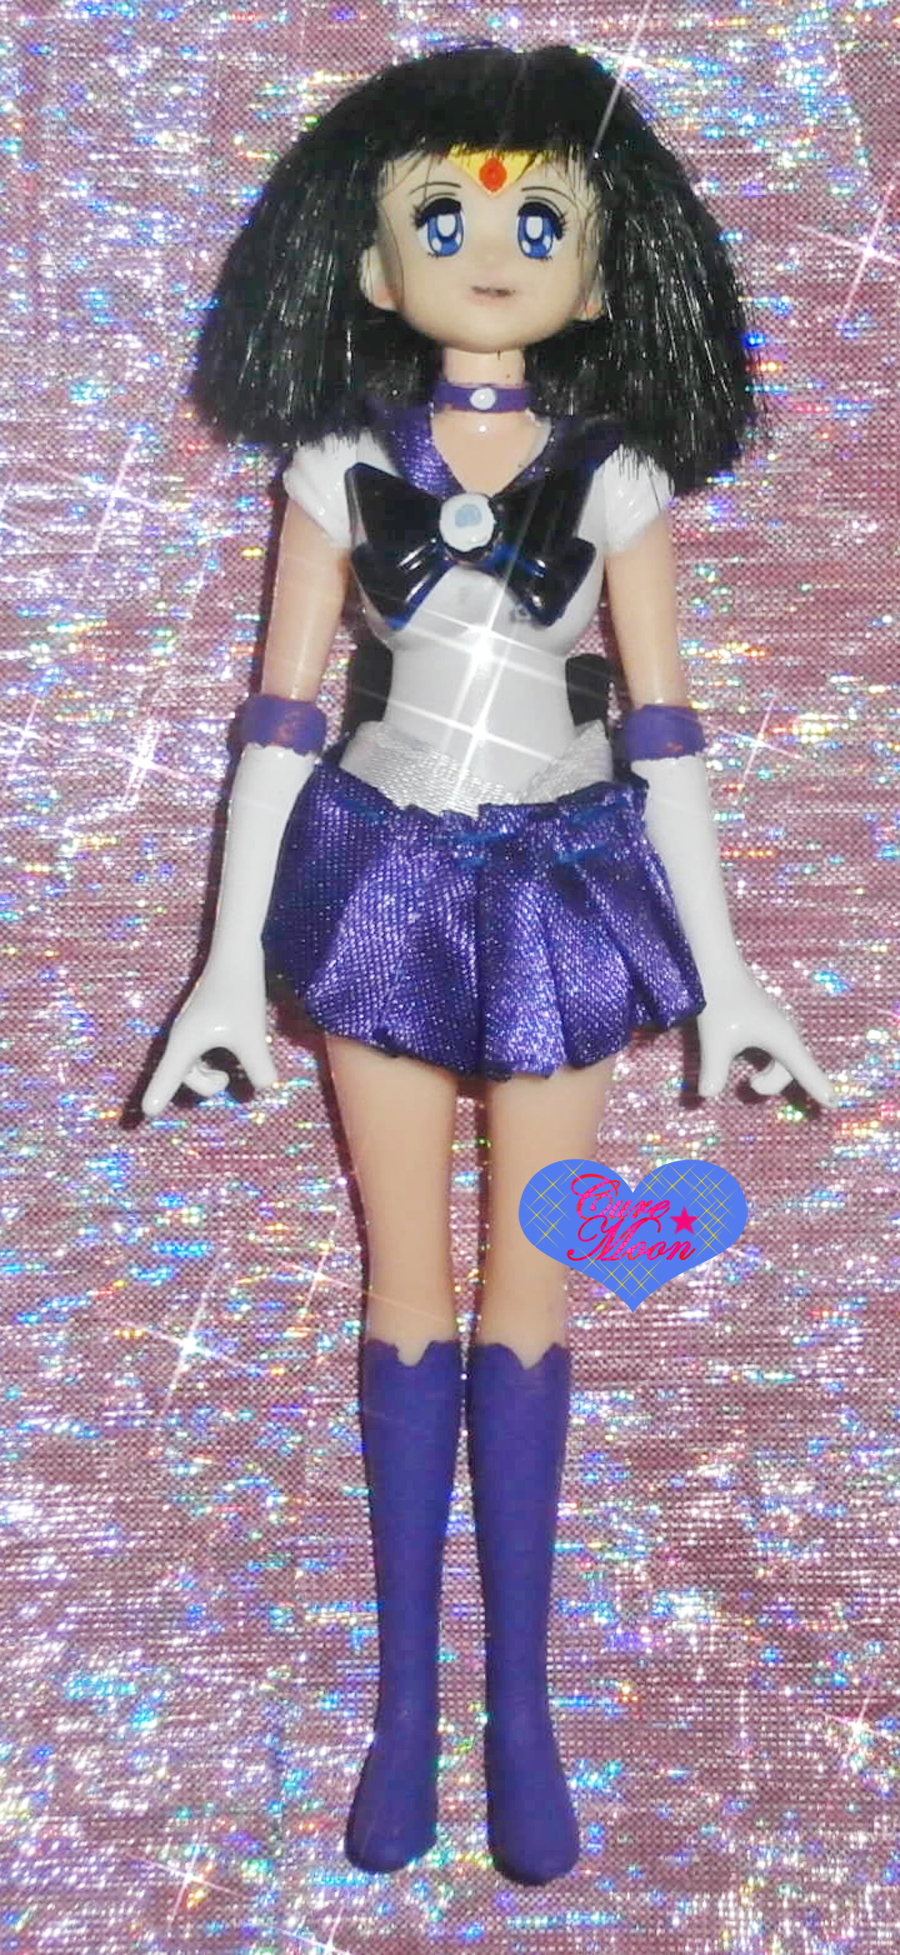 sailor-saturn-mini-doll-giochi-preziosi-gig-2011-custom-ooak-curemoon